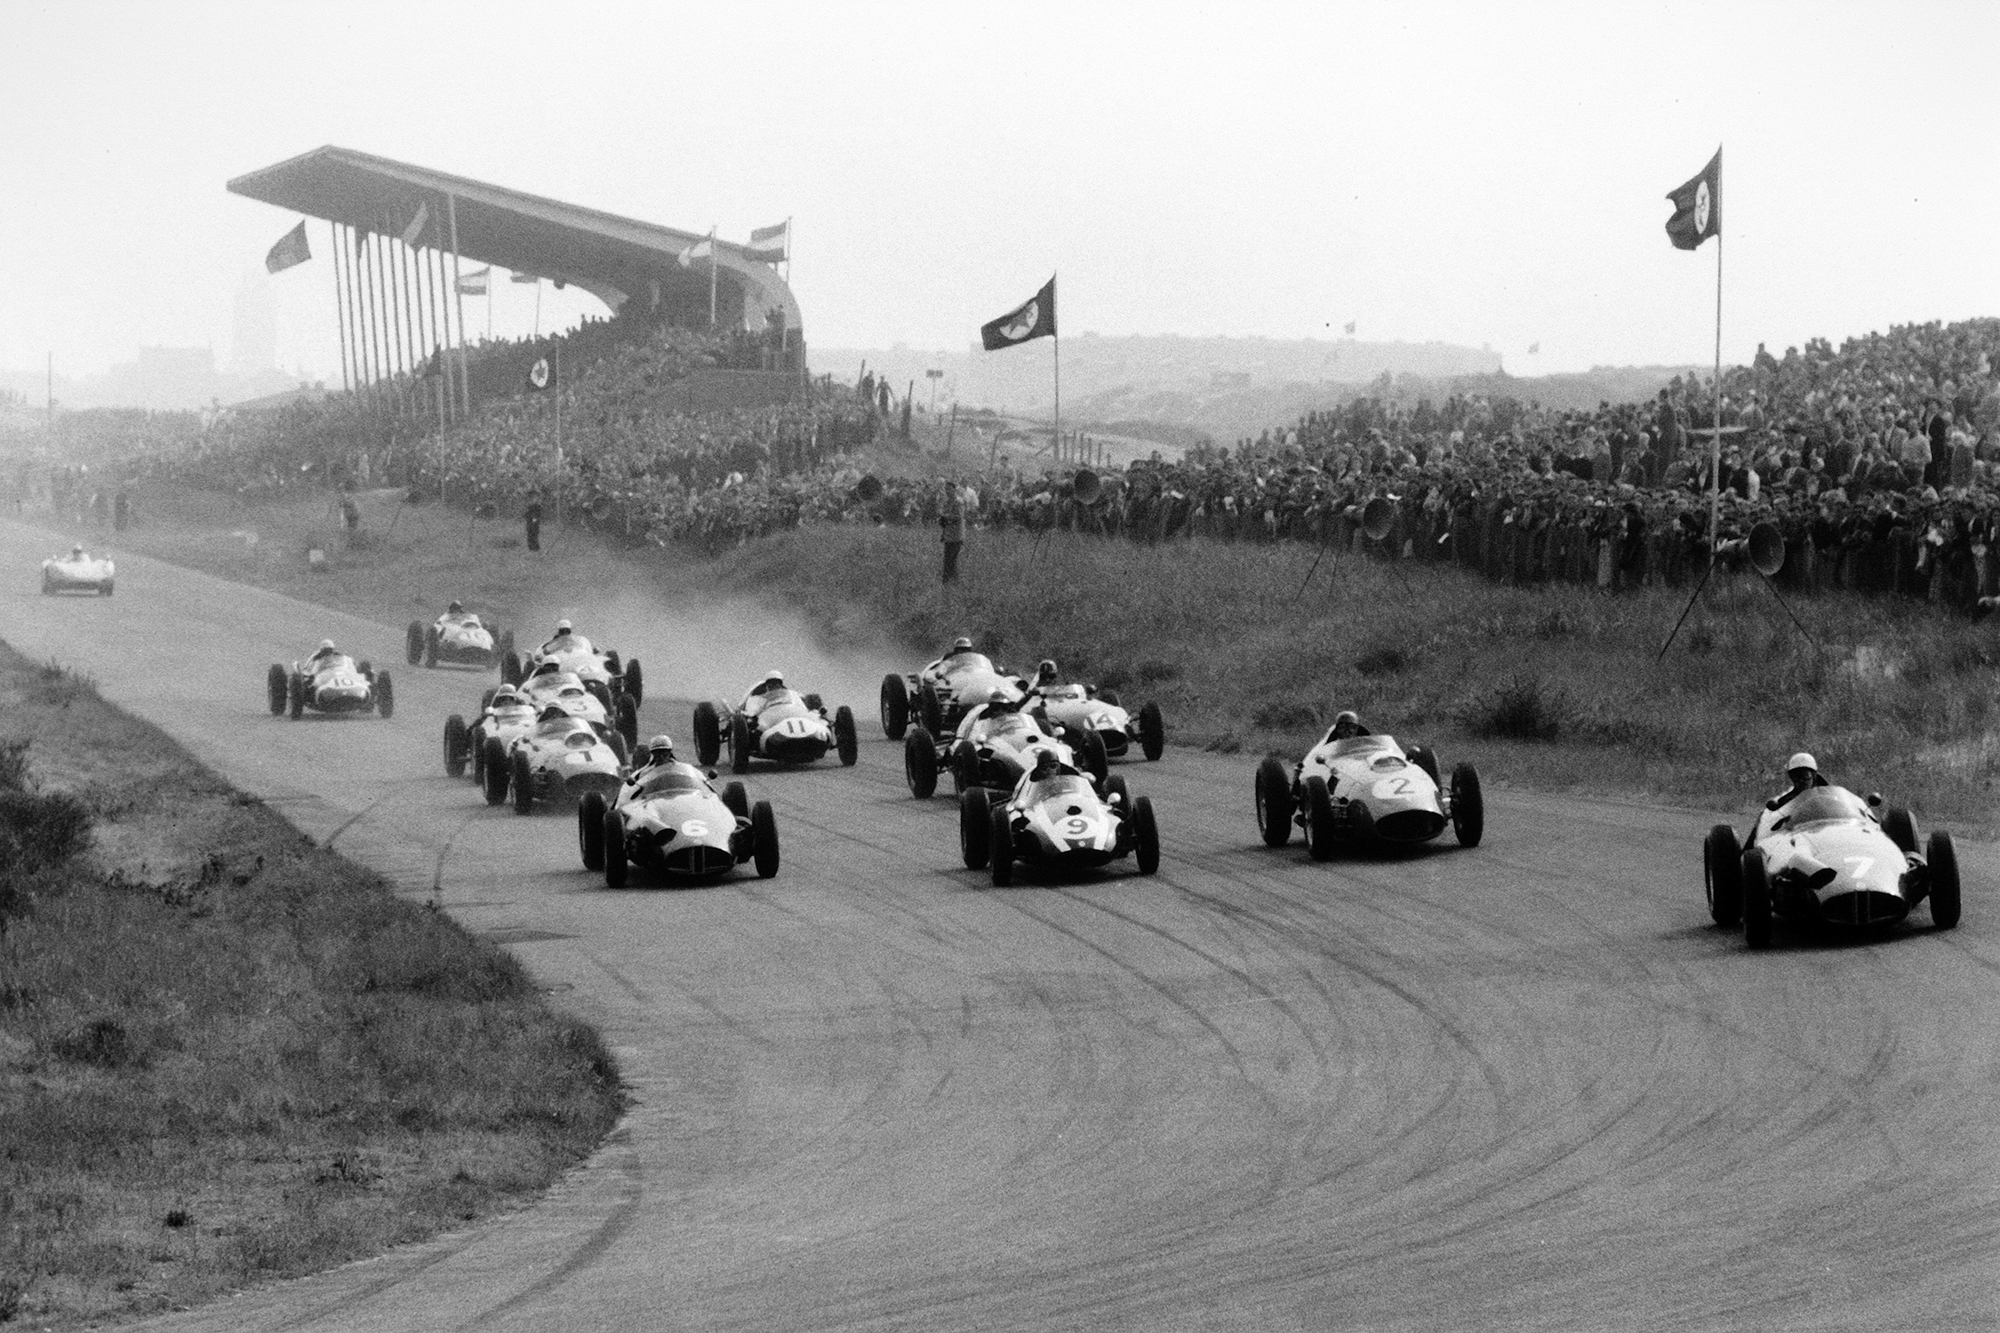 The pack leaves the start line - Jo Bonnier, BRM P25, leads Harry Schell, BRM P25, Masten Gregory, Cooper T51-Climax, Tony Brooks, Ferrari Dino 246, Jack Brabham, Cooper T51-Climax, Jean Behra, Ferrari Dino 246, Graham Hill, Lotus 16-Climax and Stirling Moss, Cooper T51-Climax. Carel Godin de Beaufort's Porsche RSK is barely off the line